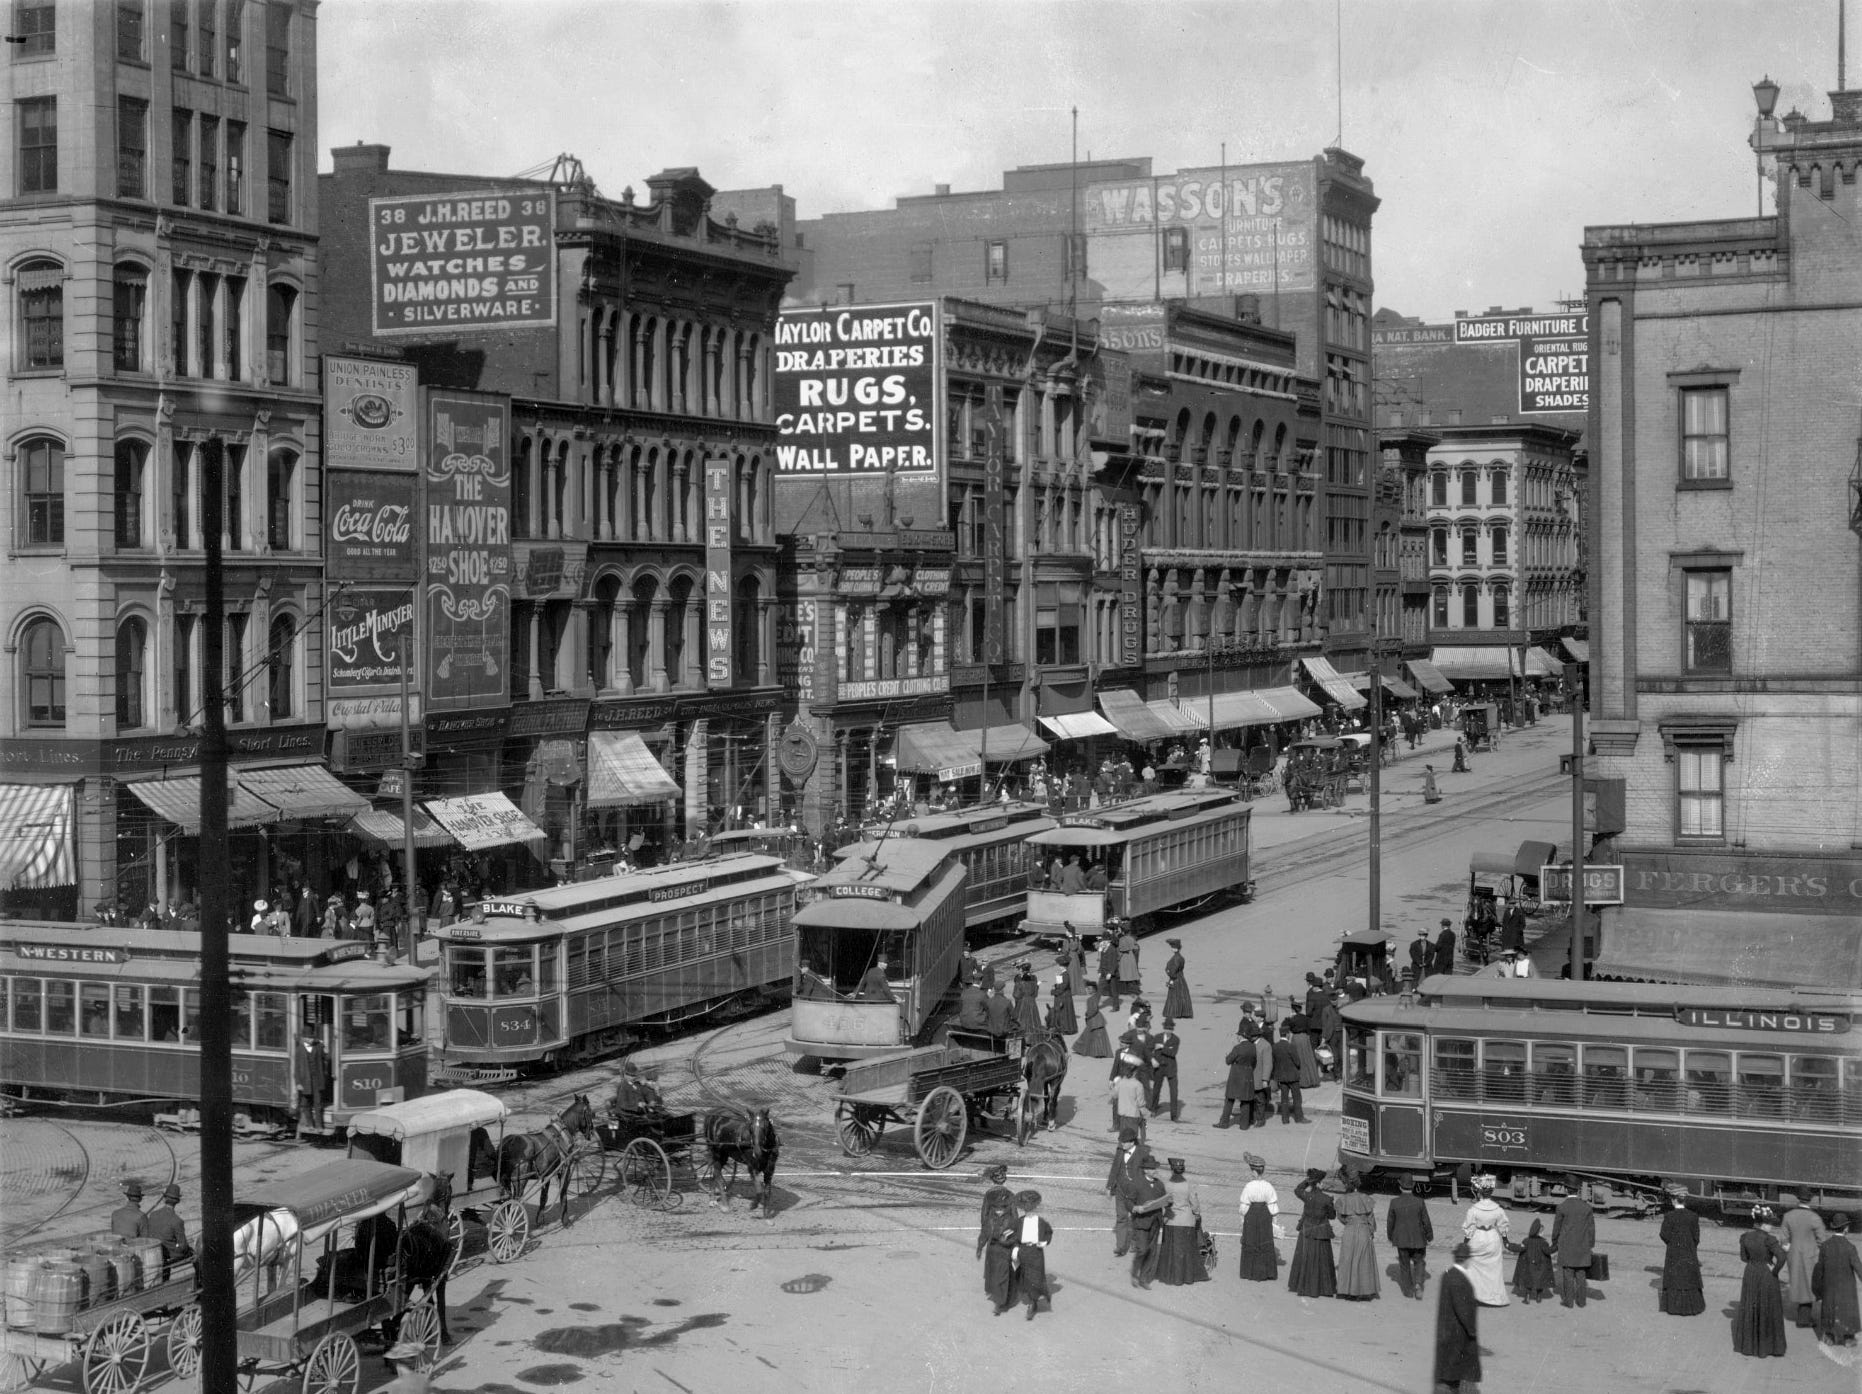 Downtown Indianapolis in 1906 at Illinois and Washington Streets looking east was a confluence of pedestrians, horse and buggy and trolleys.